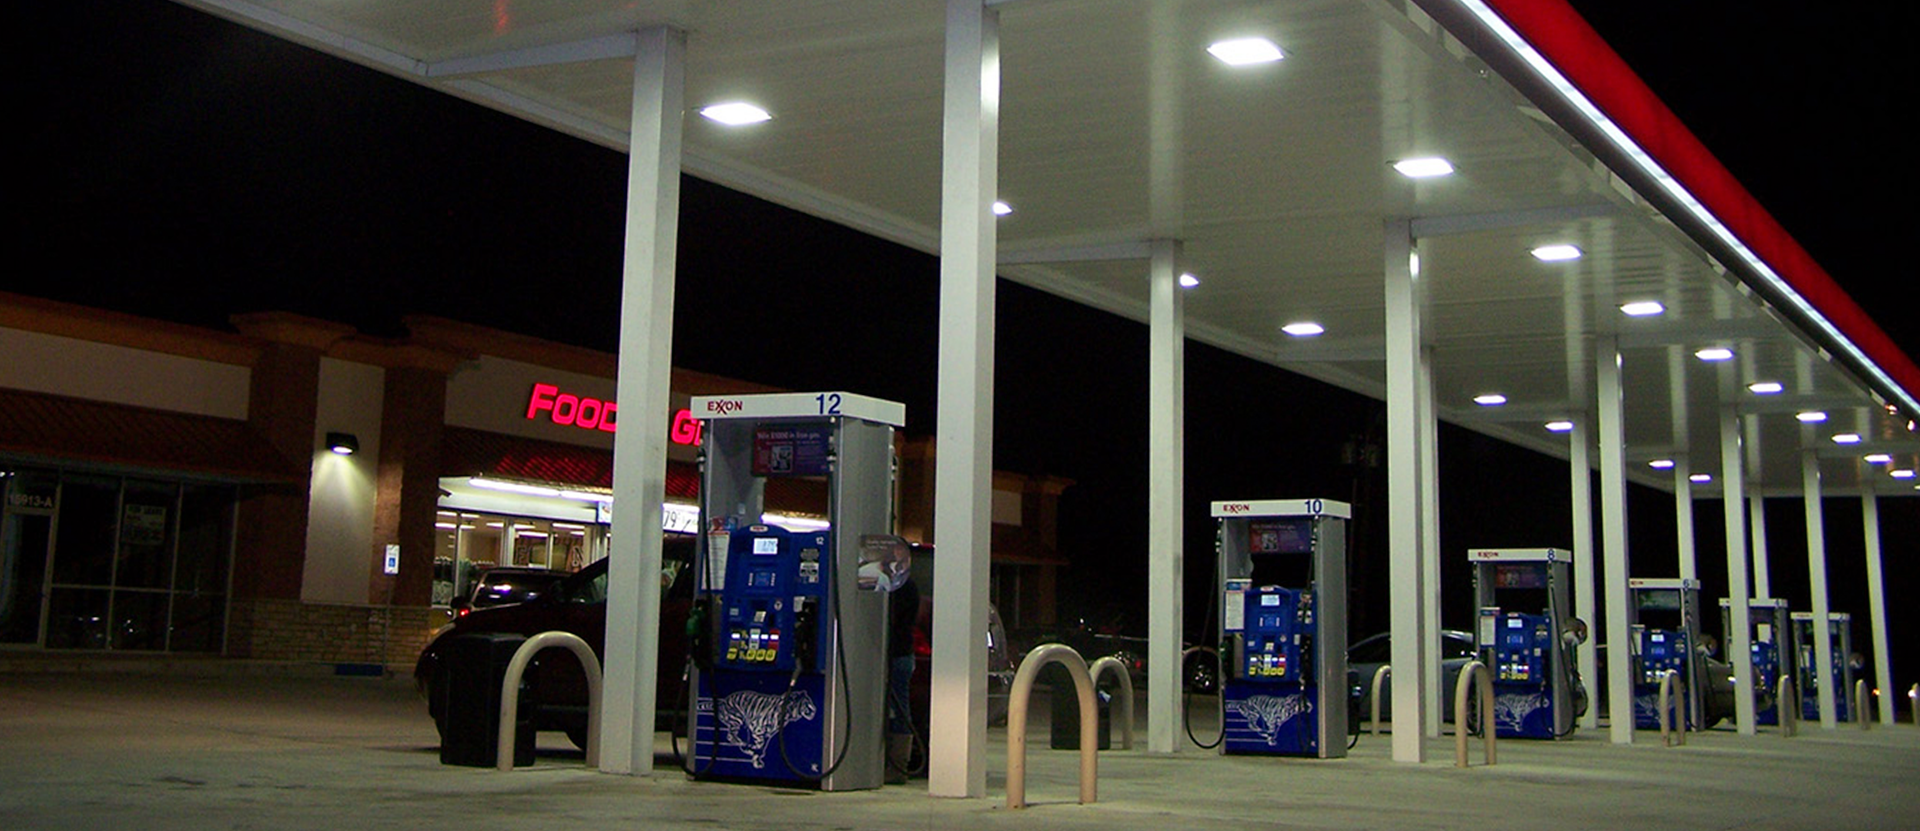 Exxon-dispenser-forecourt